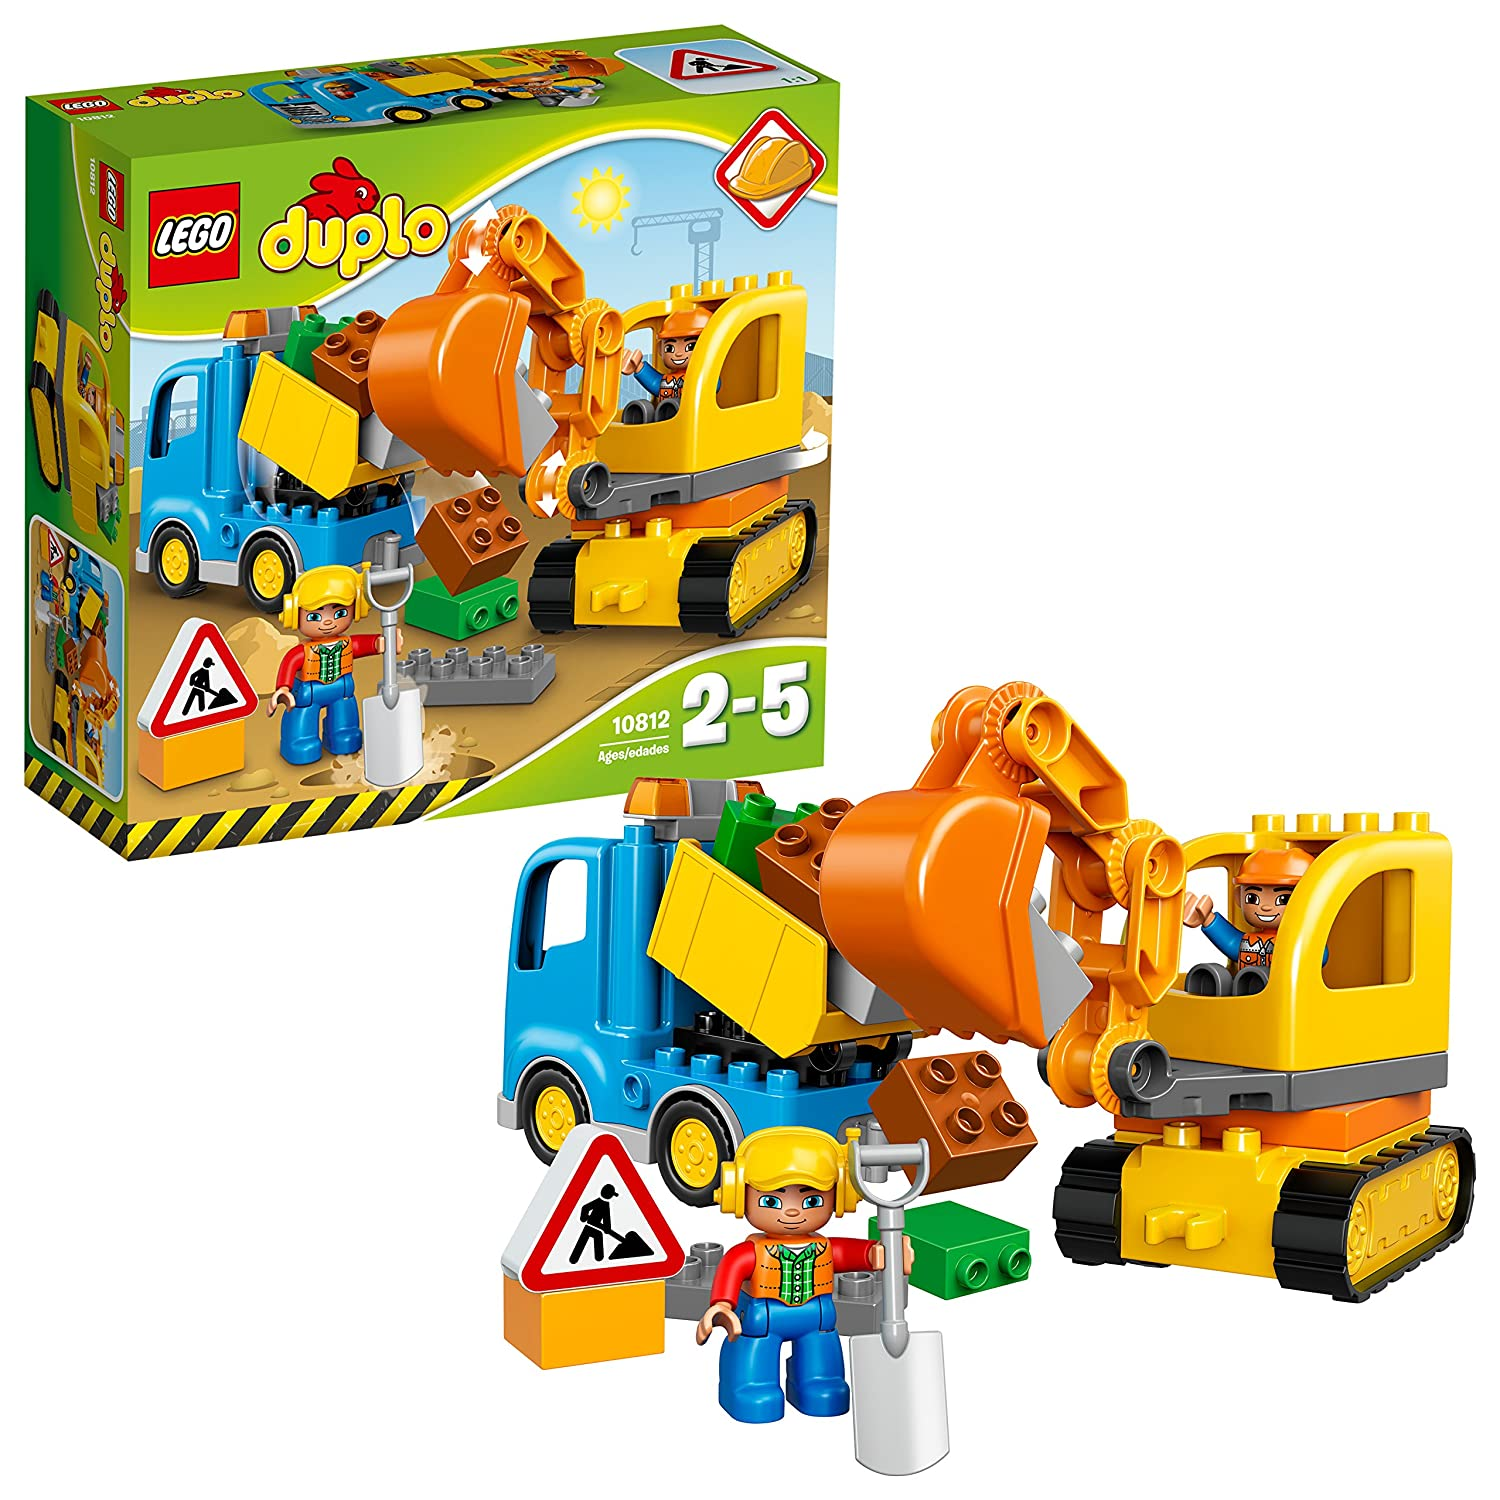 LEGO 10812 Duplo Town Toy Truck and Tracked Excavator, Large Building Bricks, Preschool Construction Set for Kids